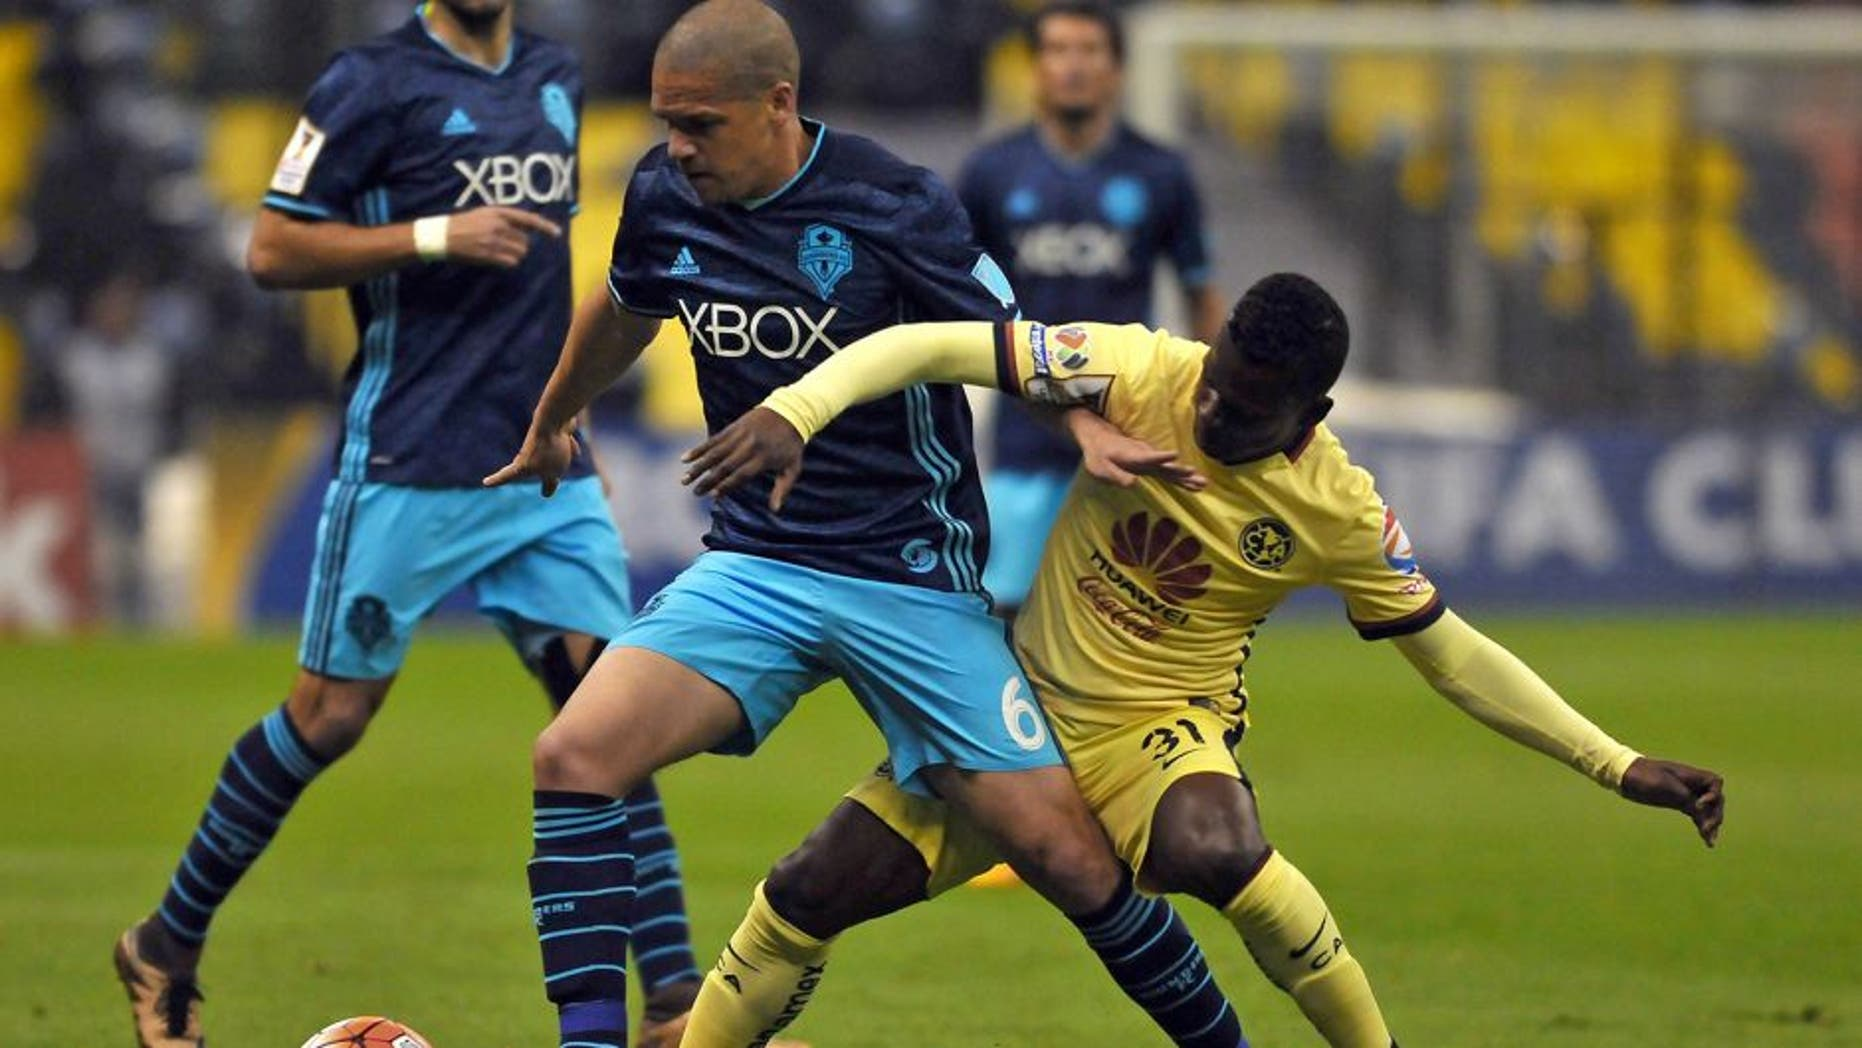 Darwin Quintero (R) of Mexican club America vies the ball with Osvaldo Alonso of US Seattle Sounders during their CONCACAF Champions League quarterfinal football match at the Azteca stadium on March 2, 2016, in Mexico city. AFP PHOTO/MARIA CALLS / AFP / MARIA CALLS (Photo credit should read MARIA CALLS/AFP/Getty Images)